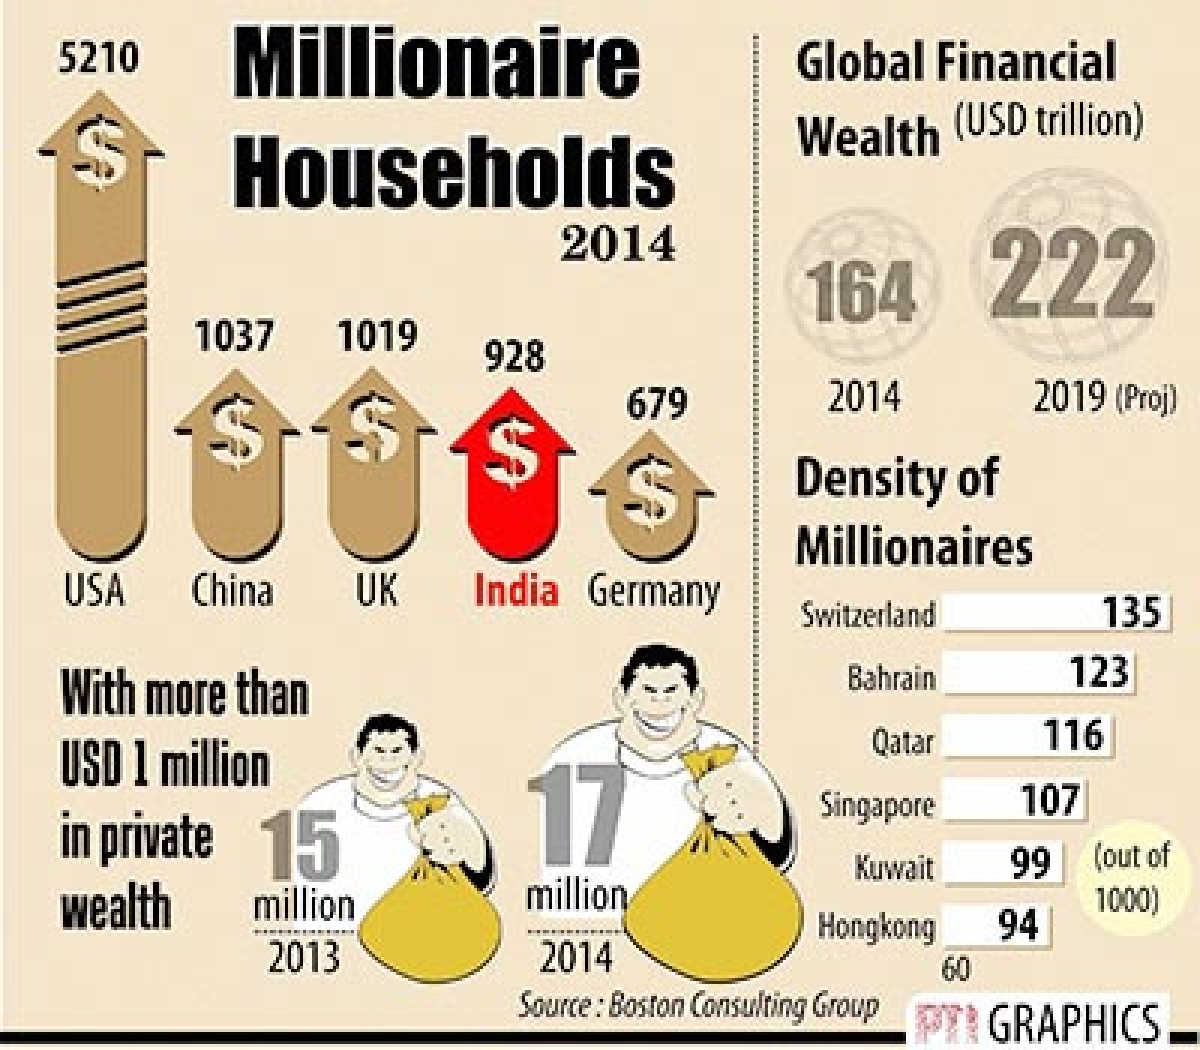 India has 4th largest ultra high-net-worth households